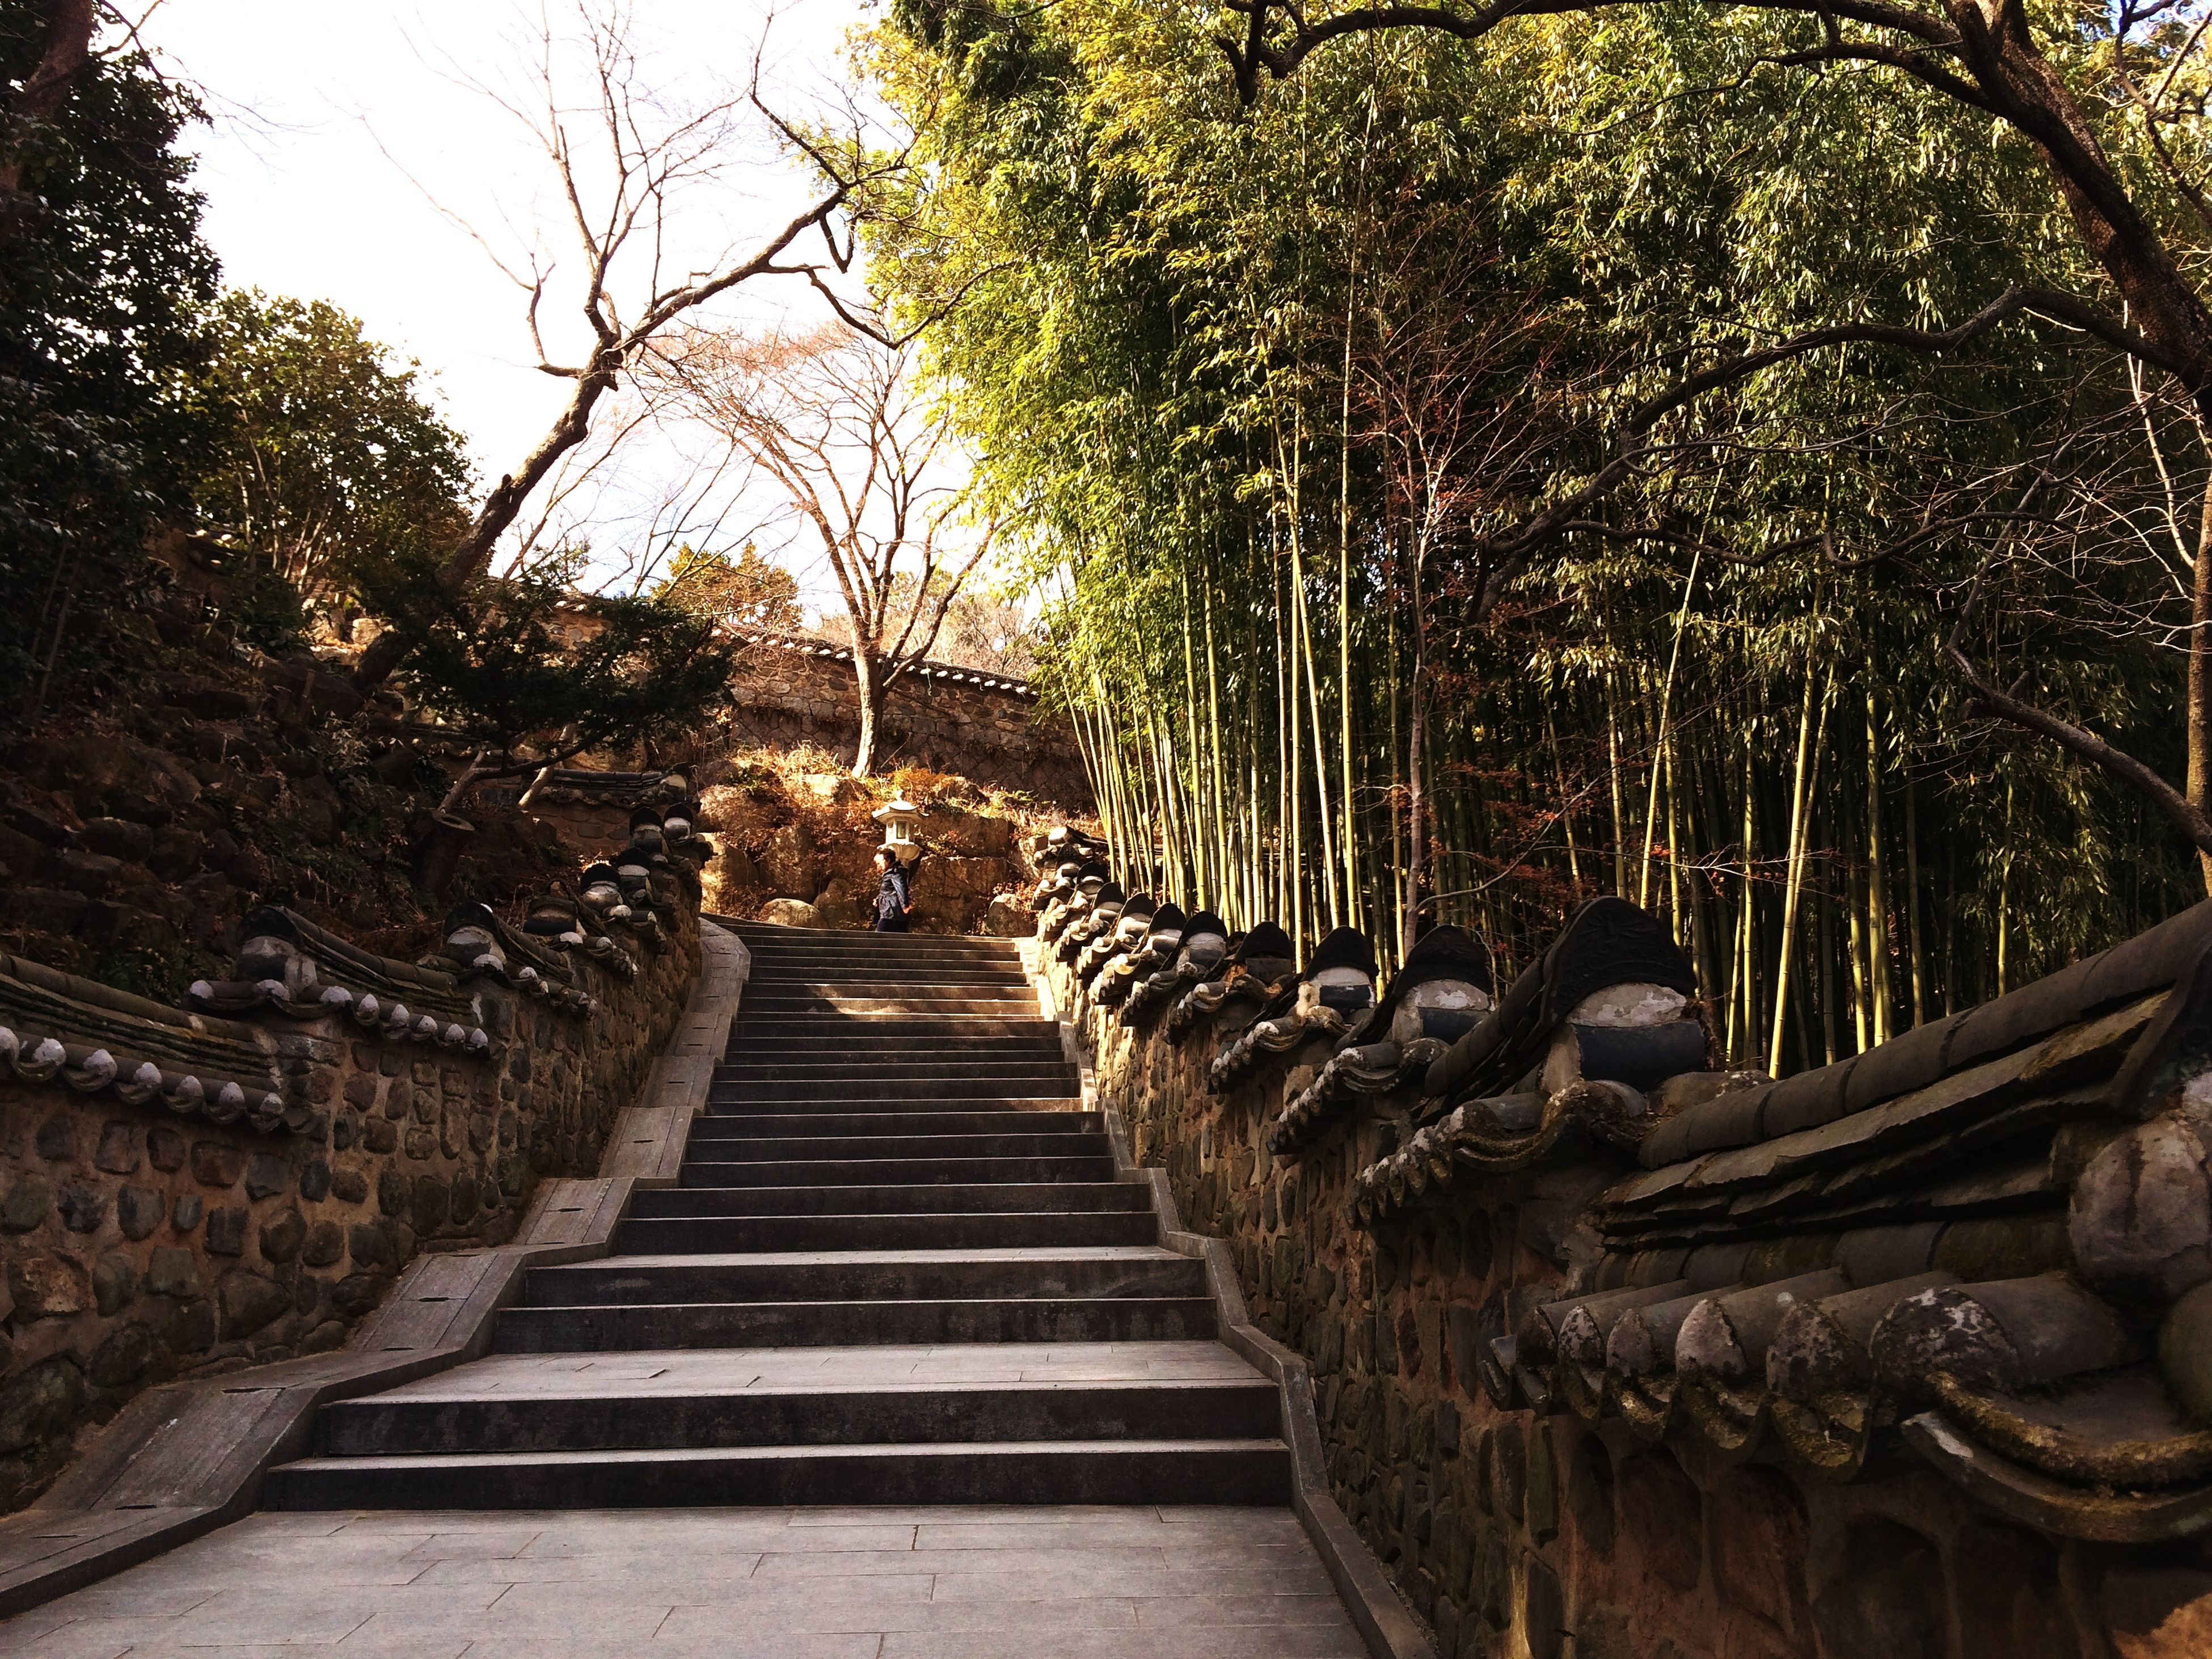 tree, steps, the way forward, built structure, architecture, steps and staircases, staircase, building exterior, railing, diminishing perspective, low angle view, old, outdoors, gate, day, entrance, history, no people, vanishing point, sky